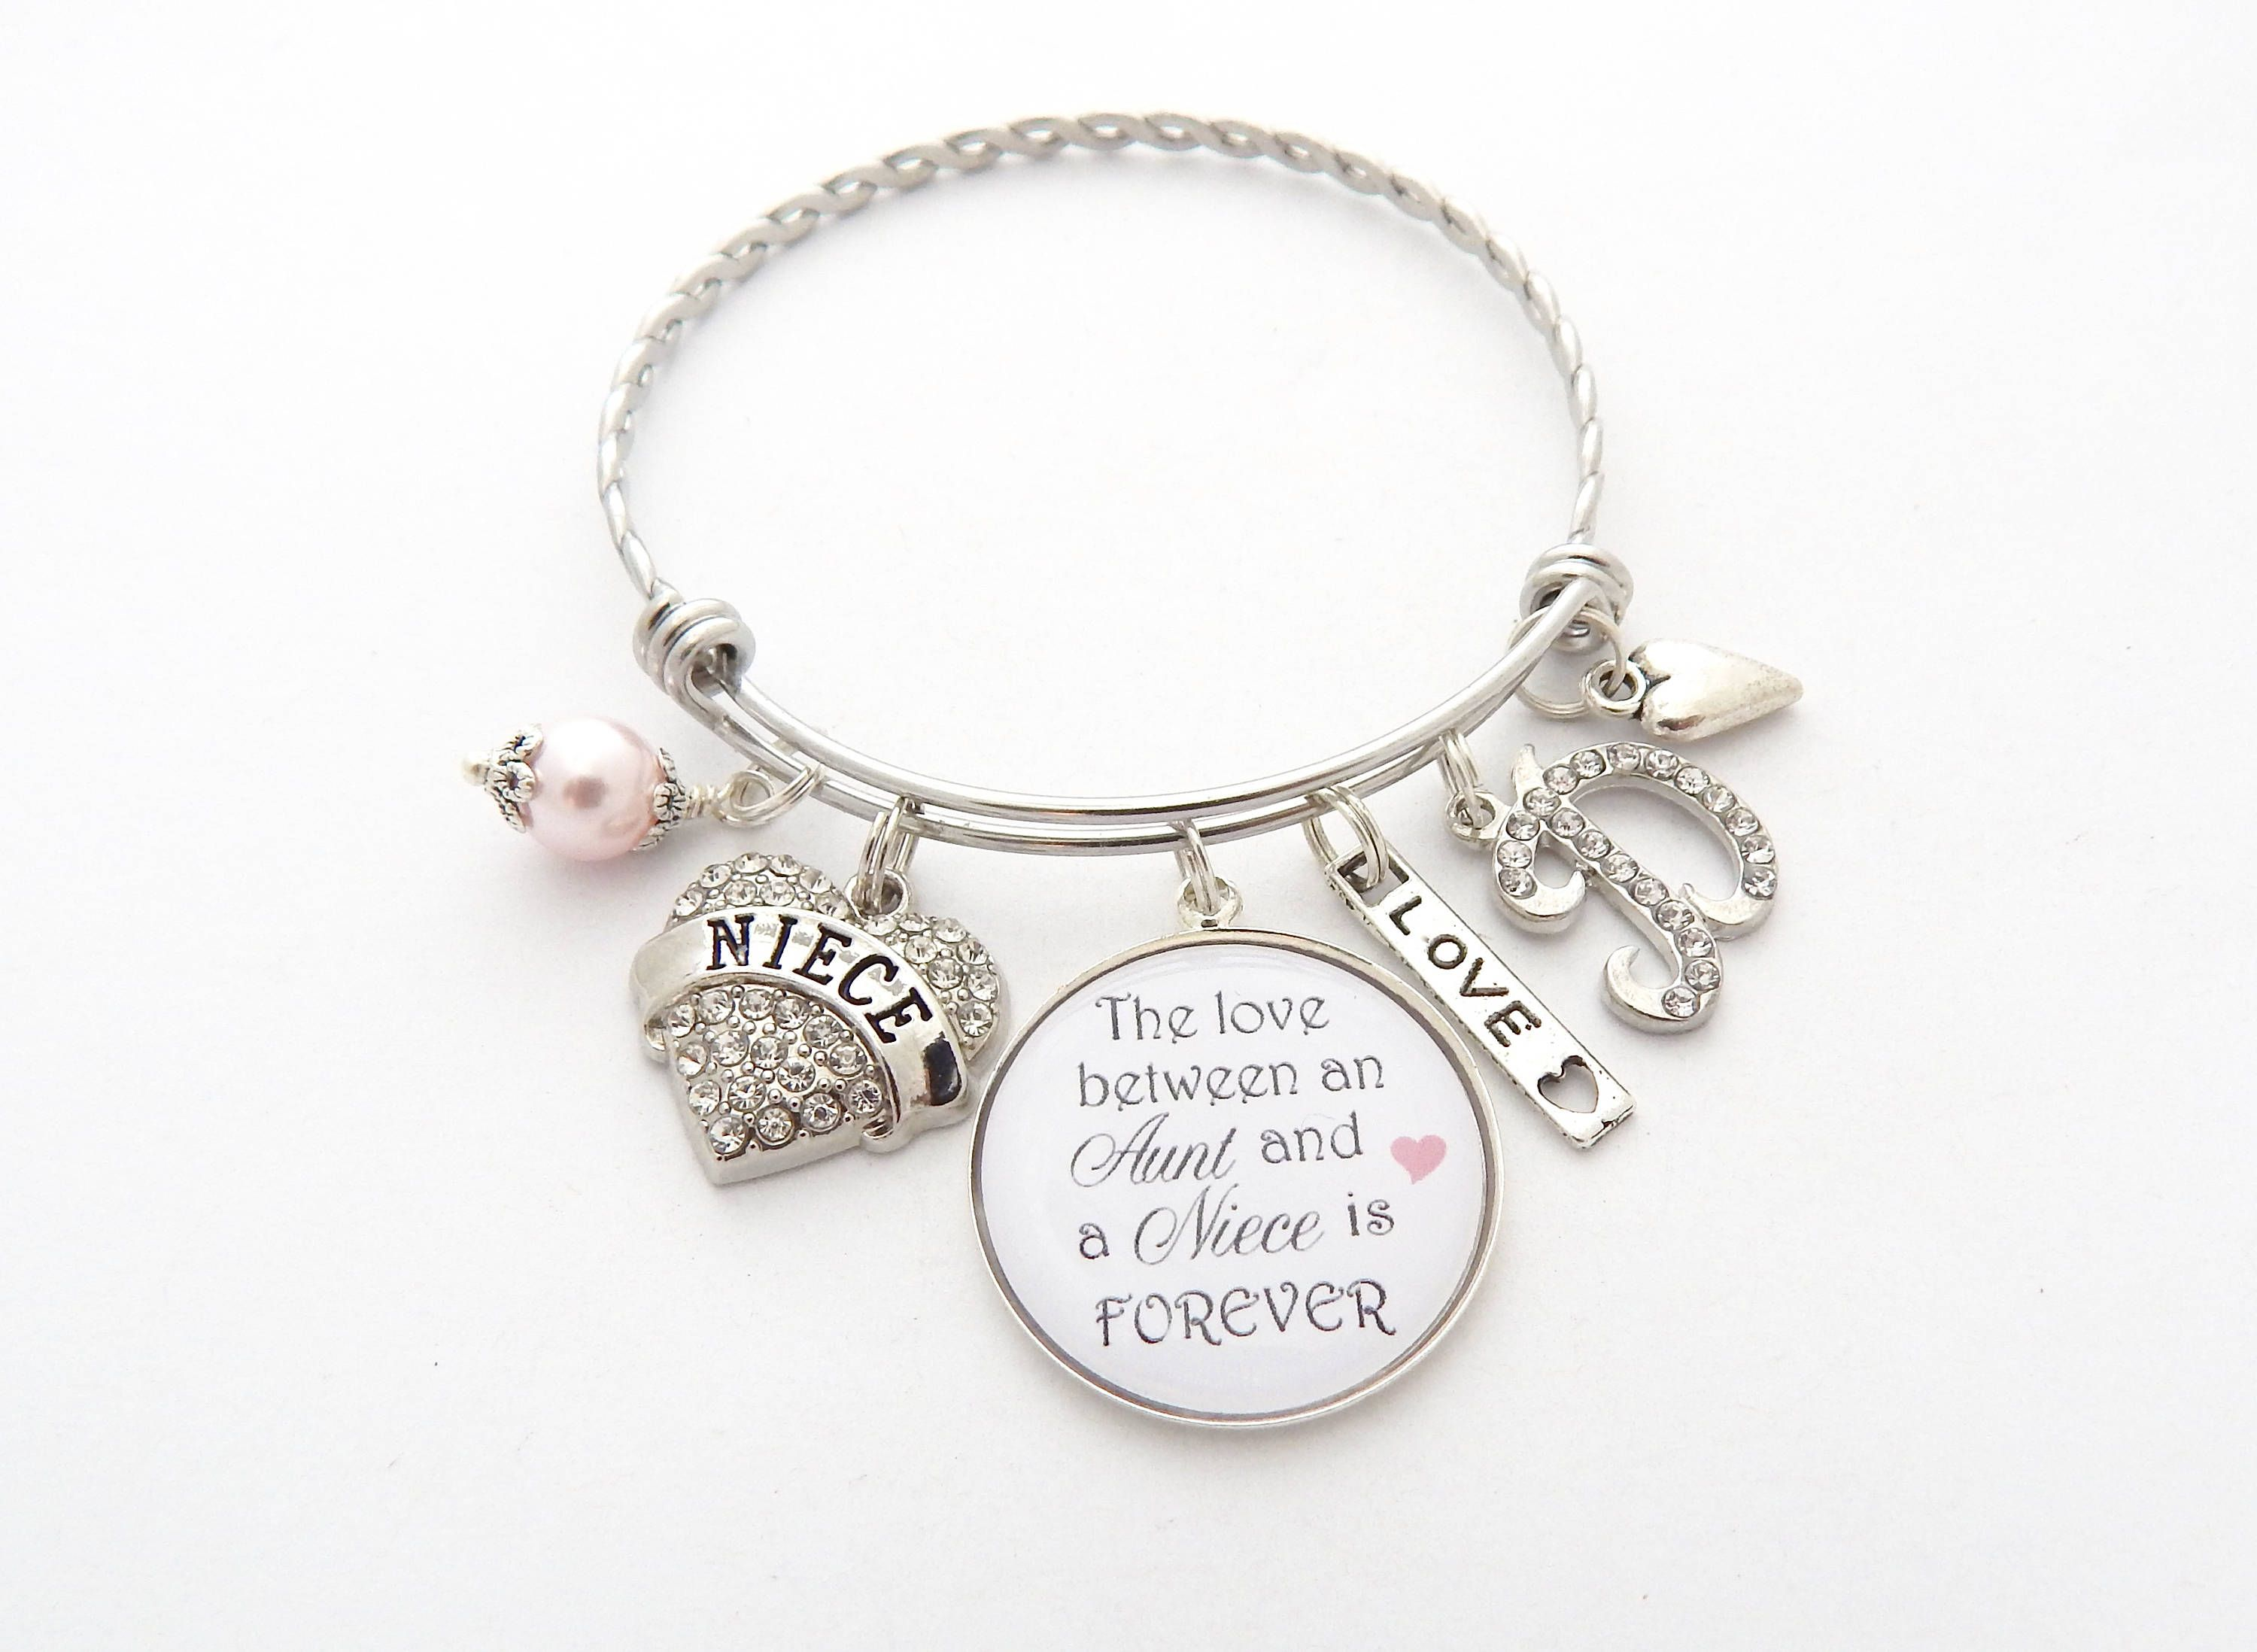 Niece Gift Bracelet Jewelry Personalized Wedding Gifts From Aunt For Rhinestone Heart Bangle